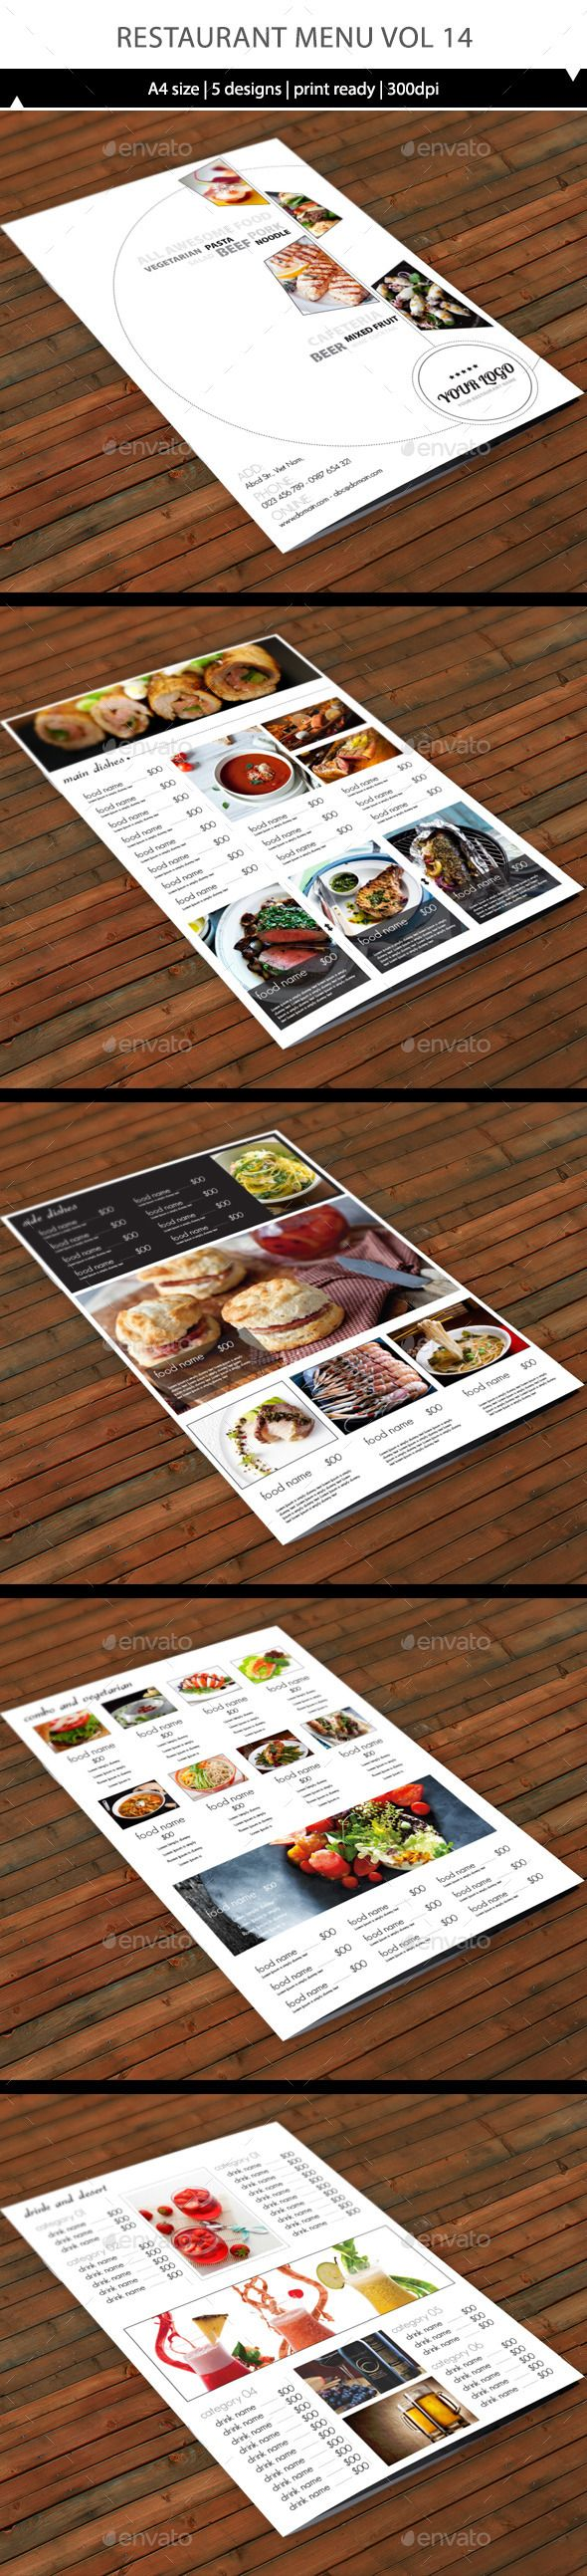 Restaurant Menu A4 Vol13 - Food Menus Print Templates